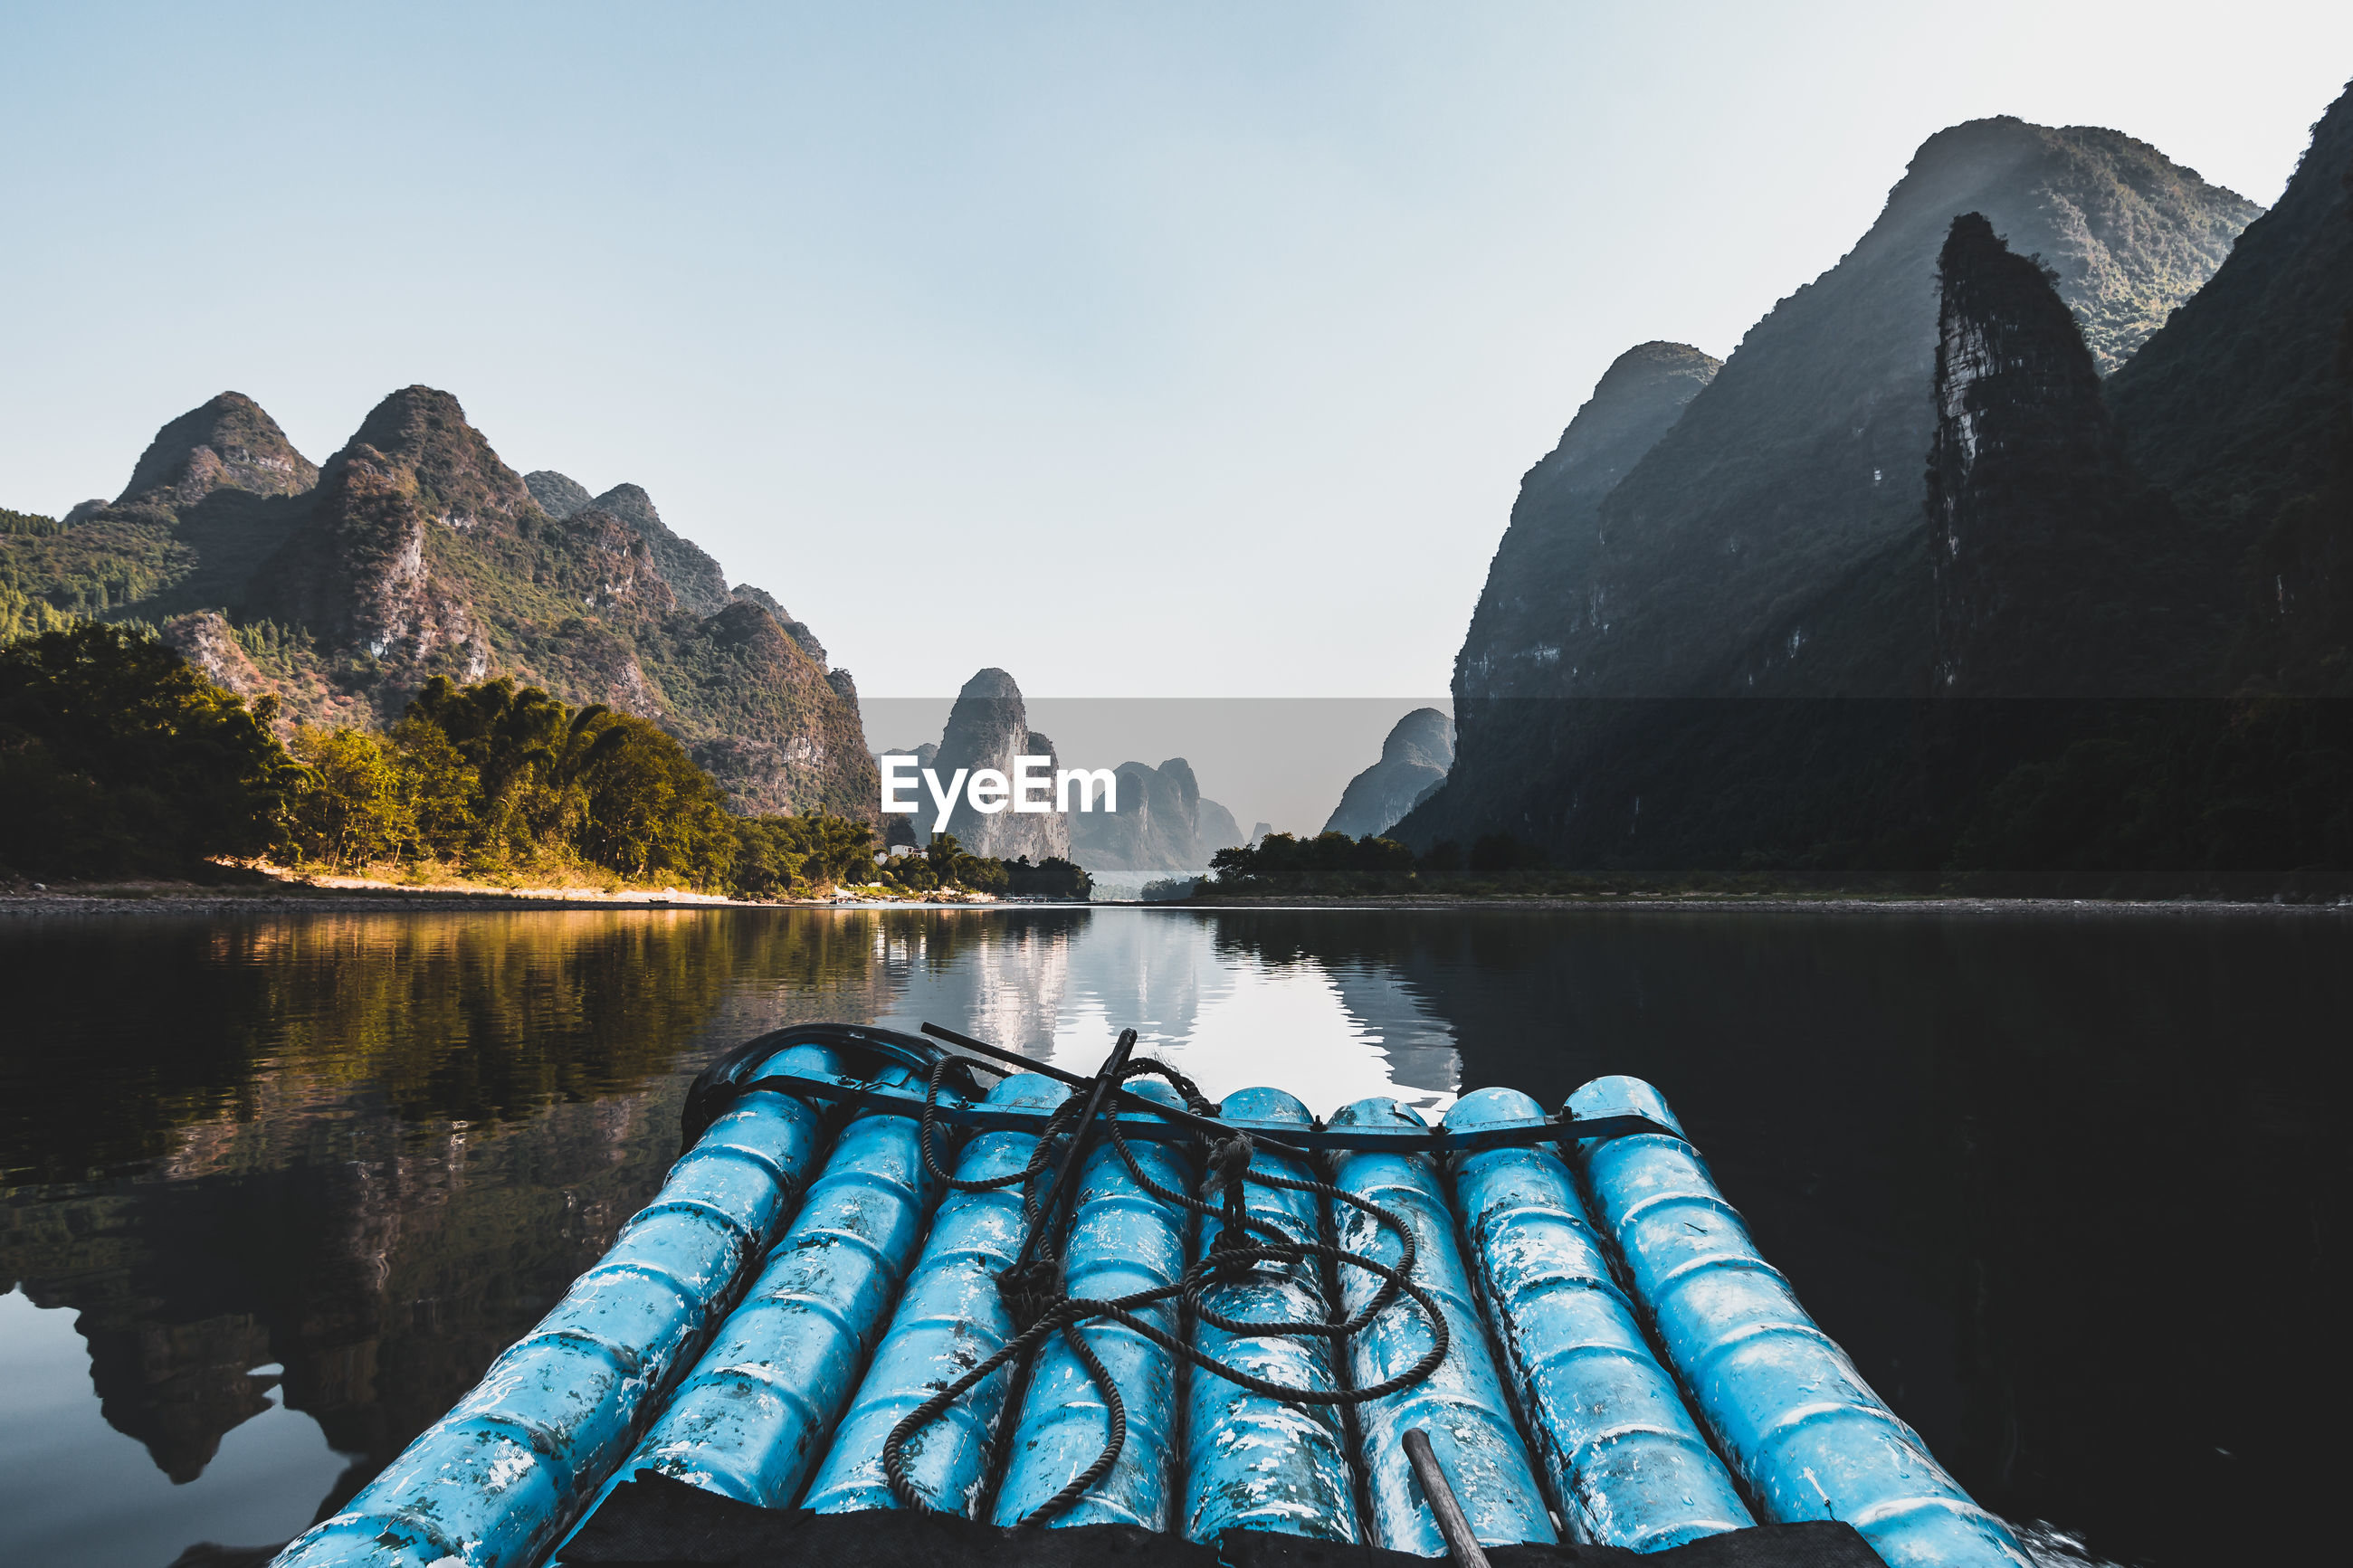 Blue wooden raft in lake with mountains in background against clear sky